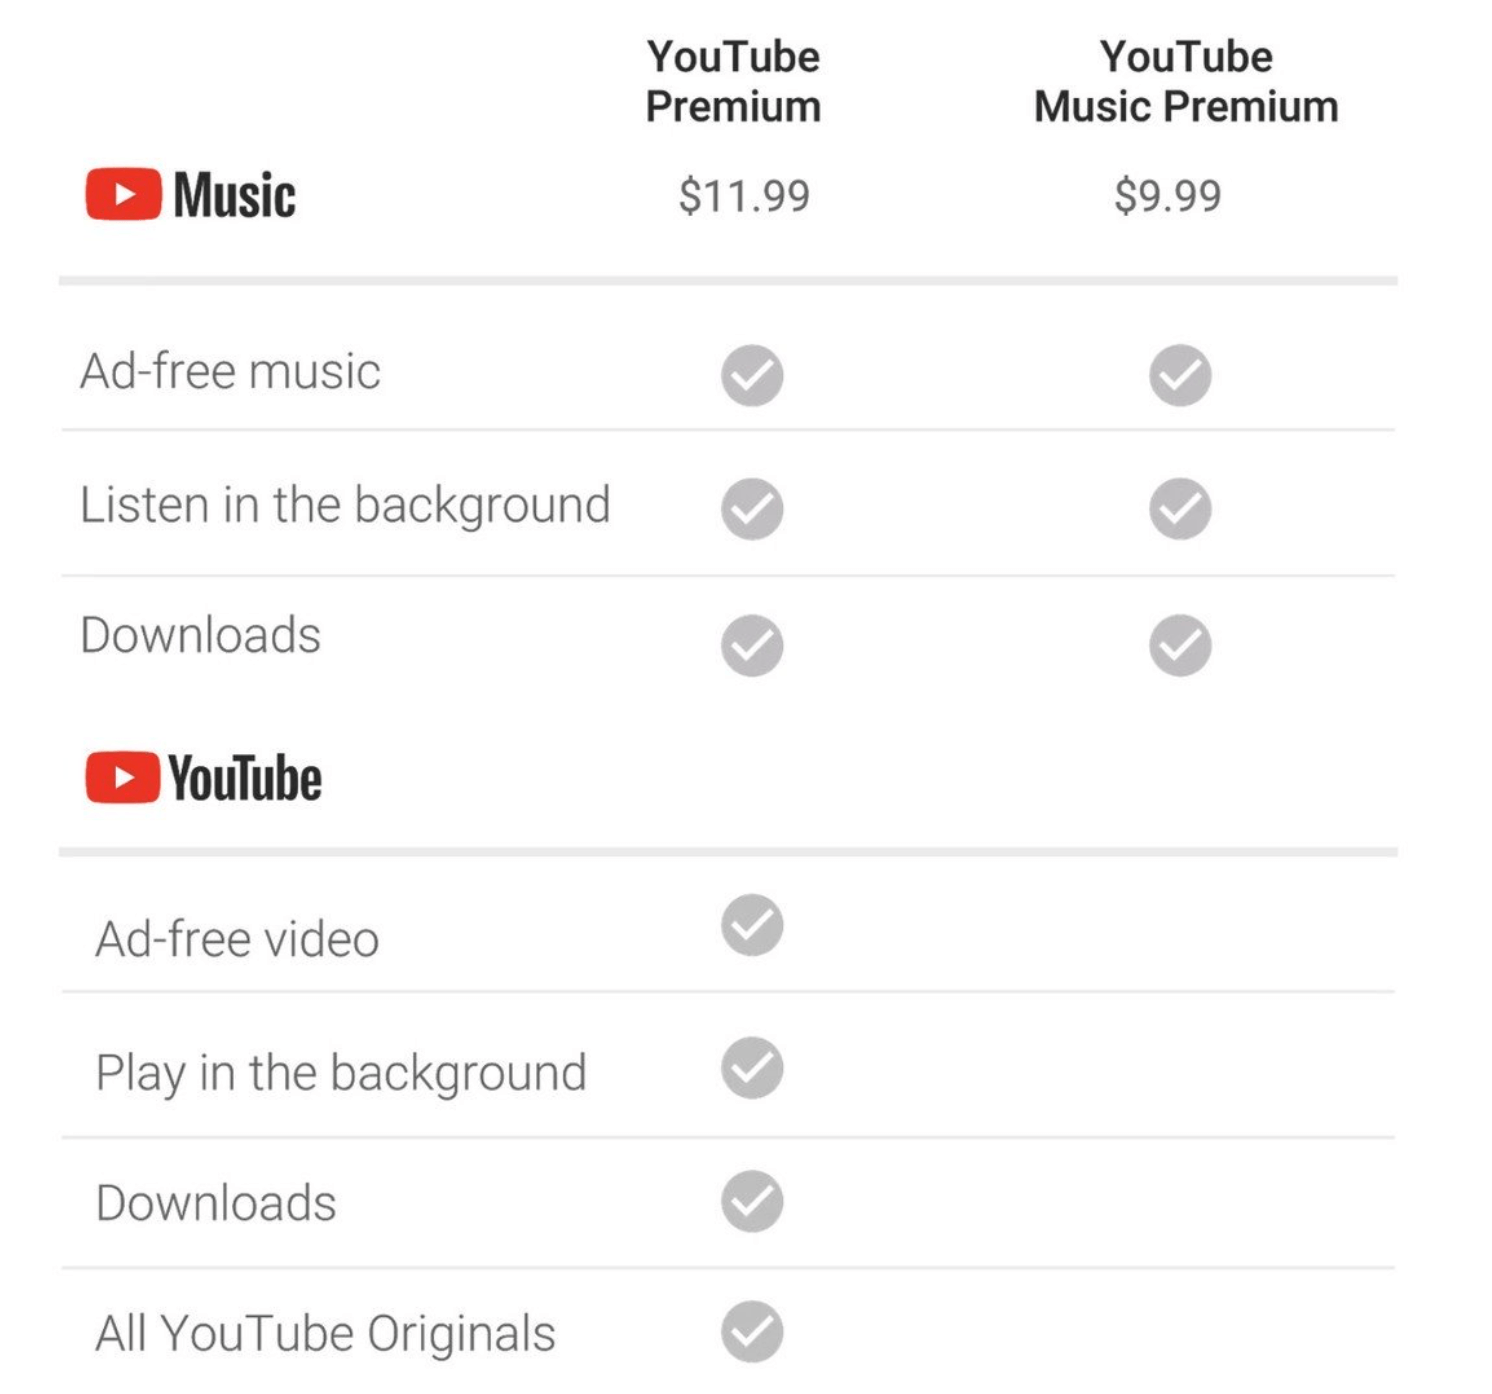 Should You Get YouTube Premium?